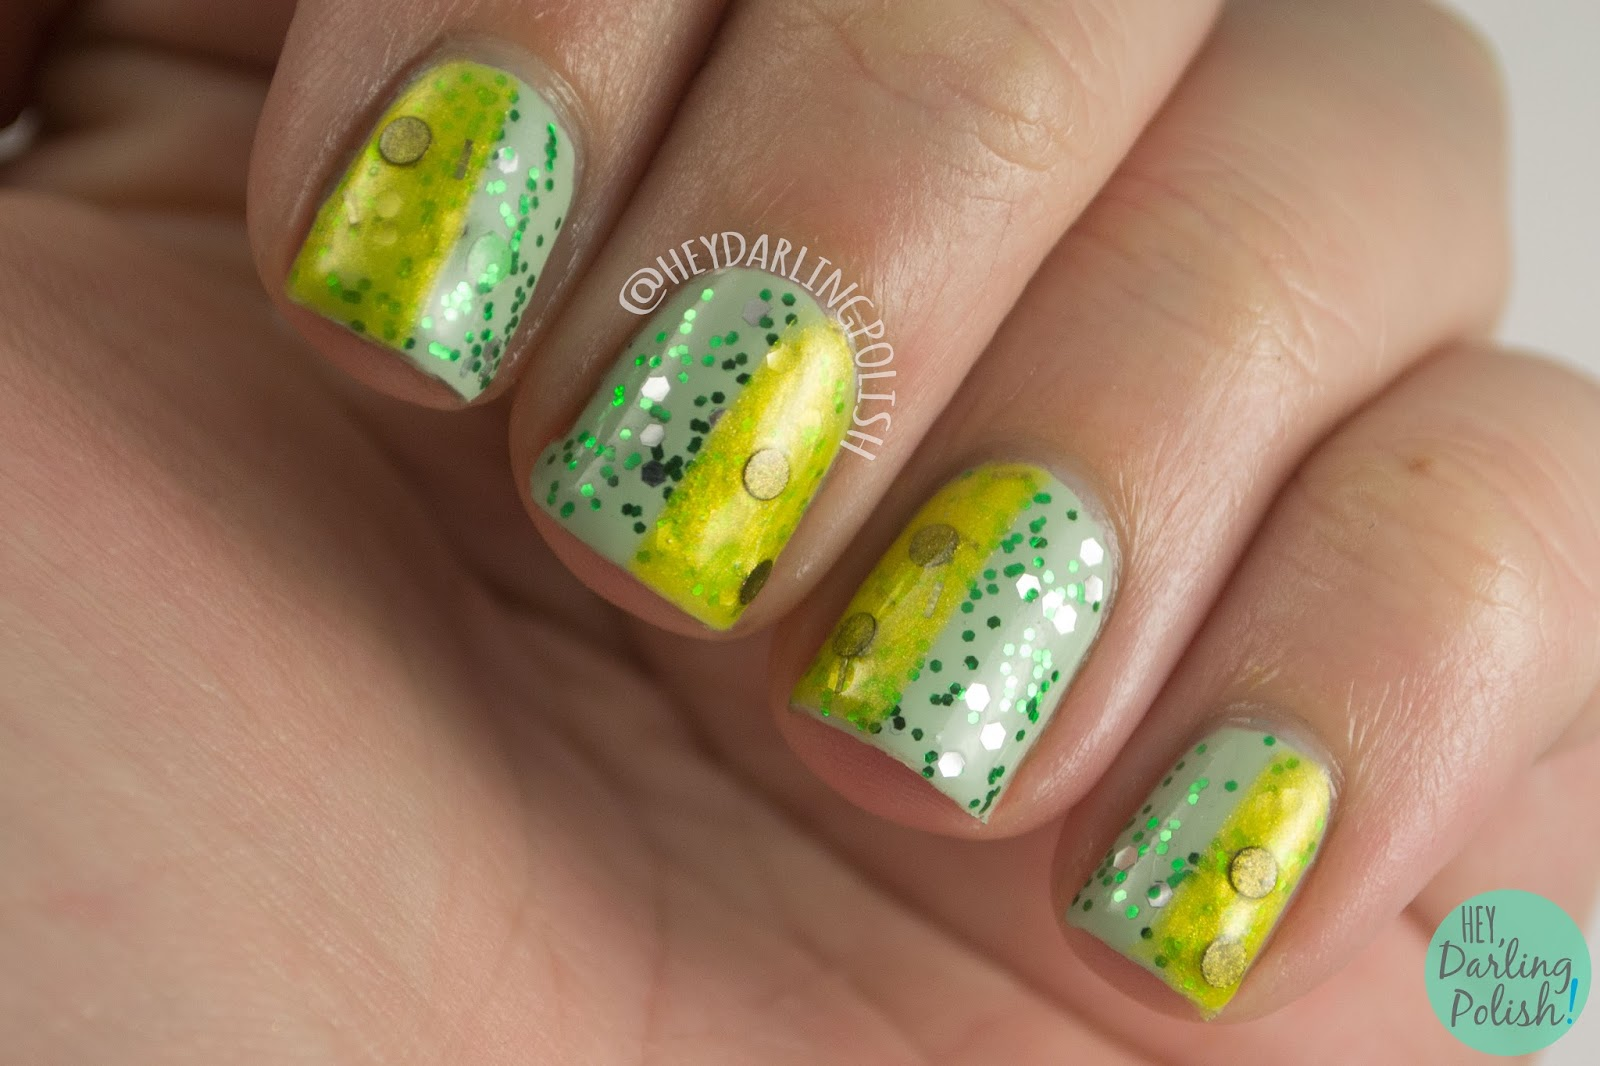 nails, nail art, nail polish, harry potter, green, yellow, just and loyal, cunning and resourceful, hey darling polish, glitter, indie, indie polish, fandom cosmetics